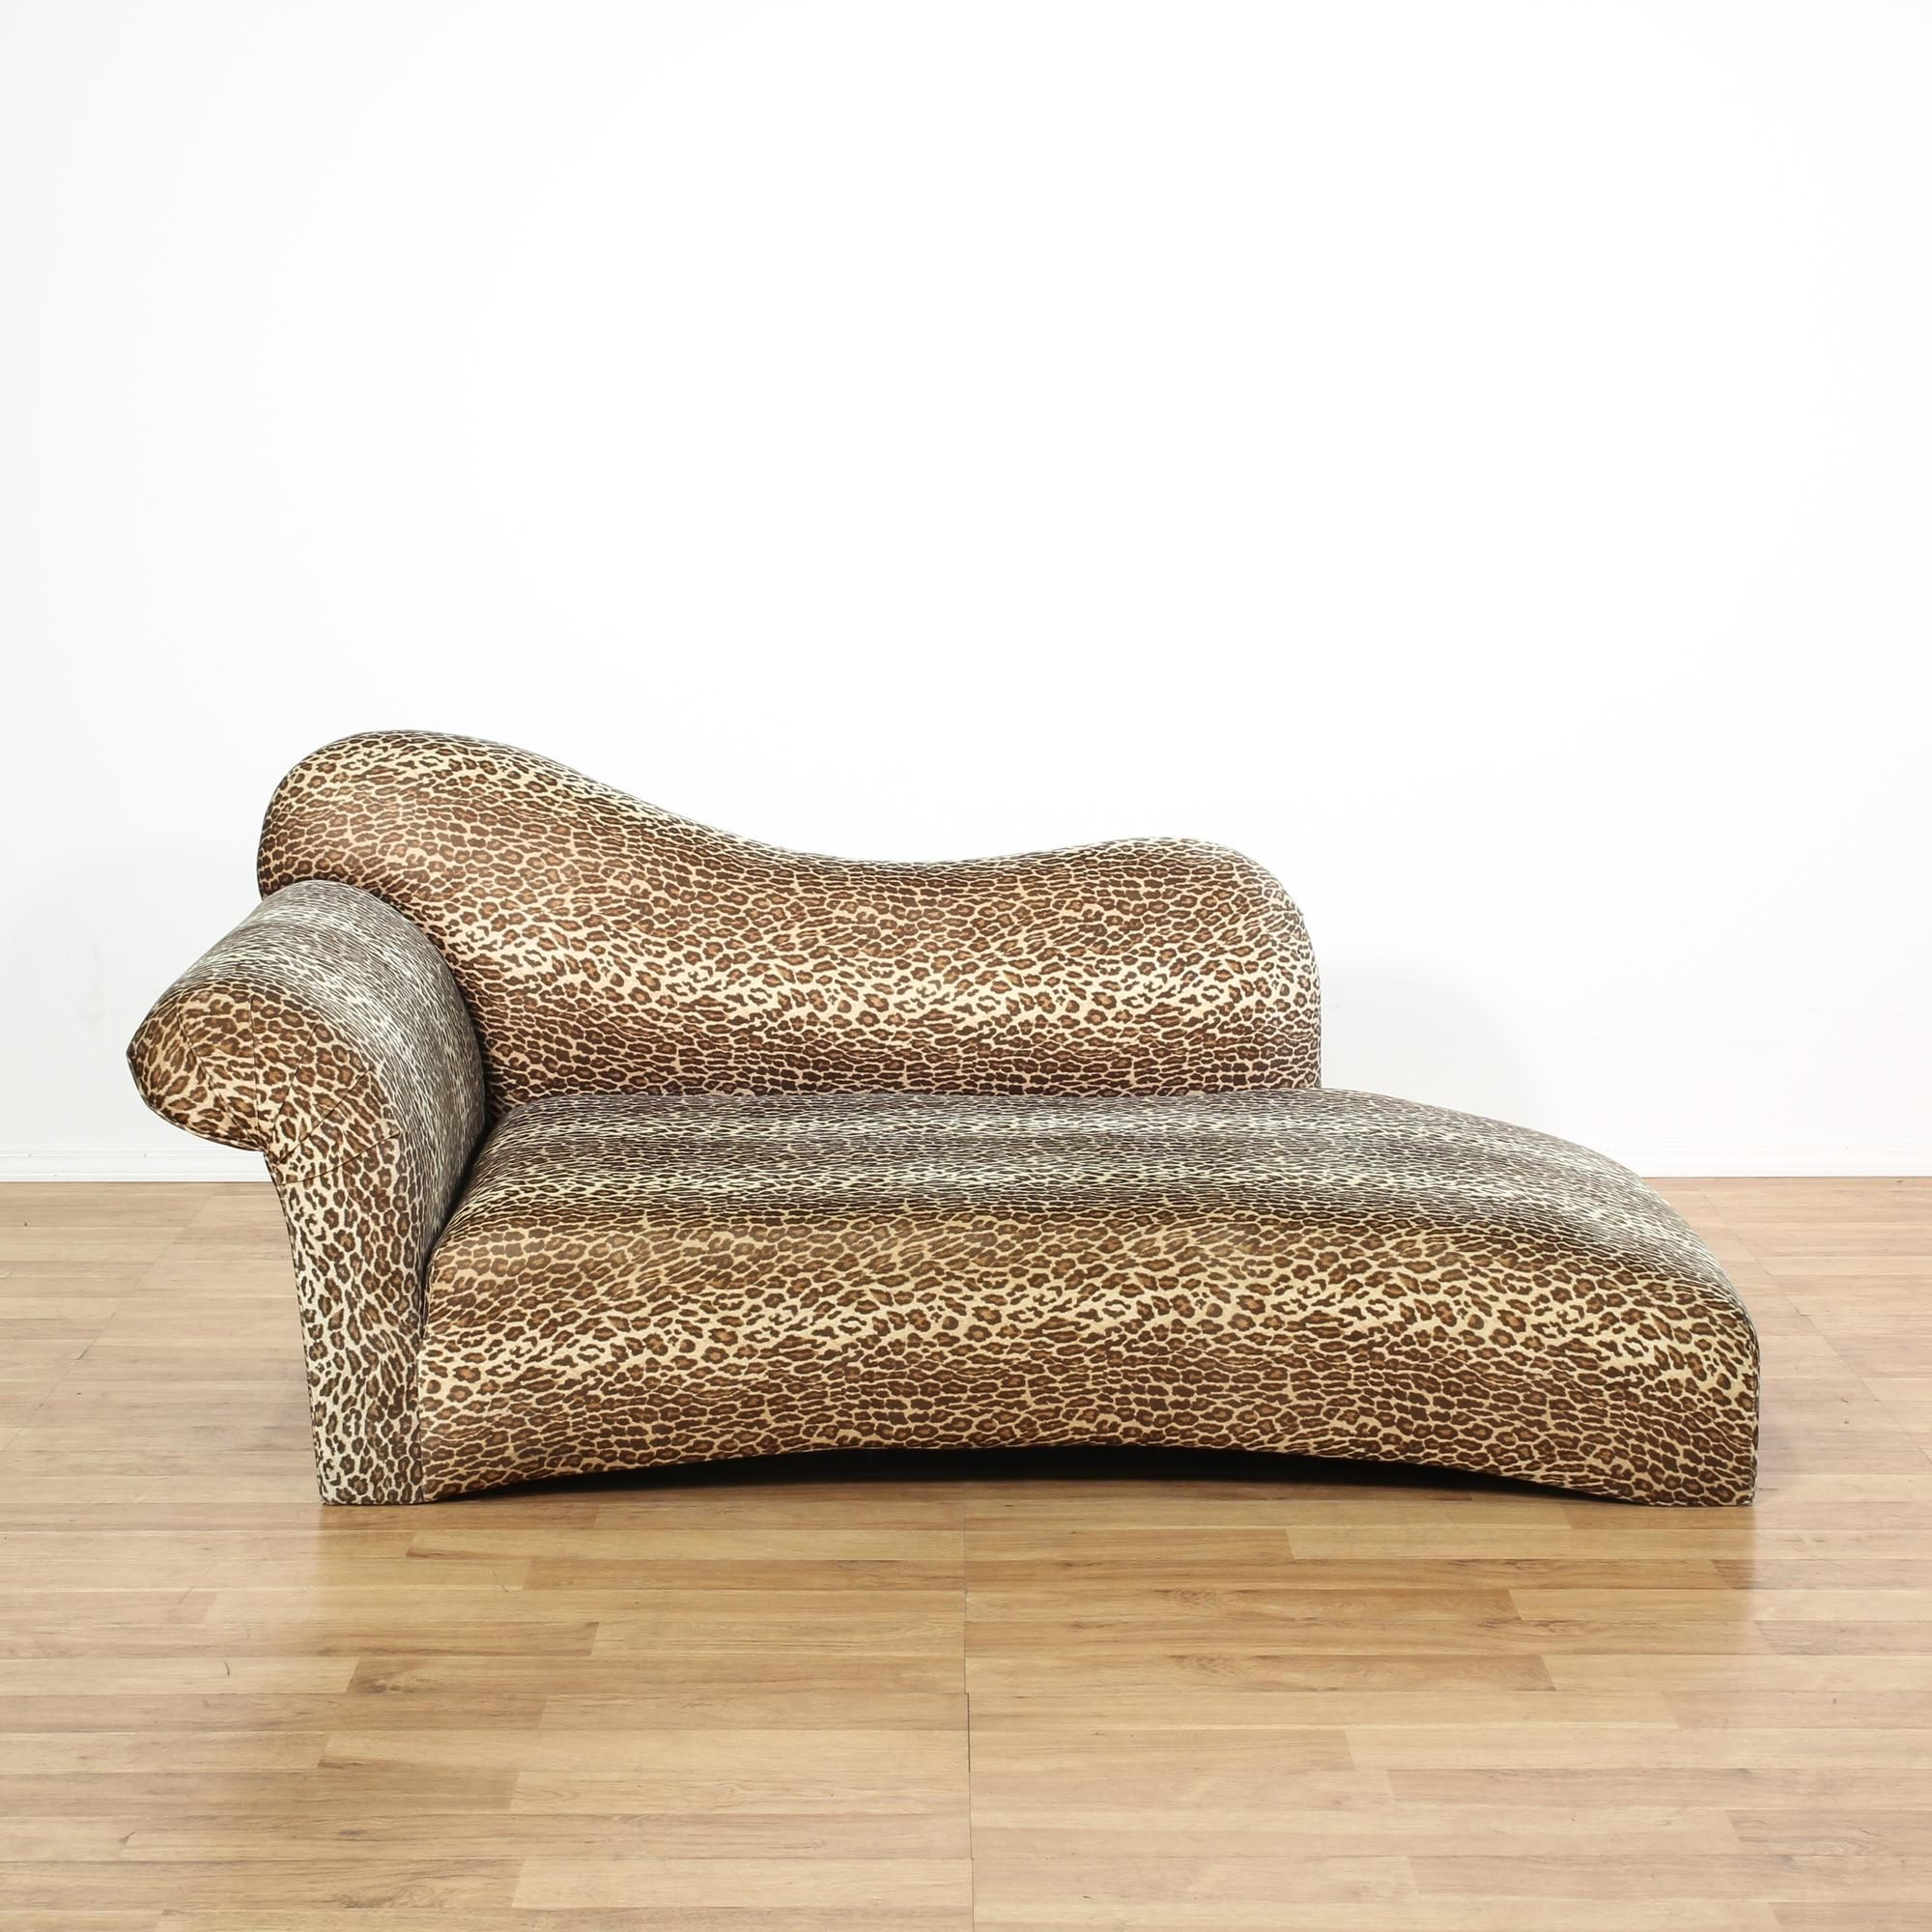 This chaise lounge is upholstered in a fun leopard print. This ... on chaise sofa sleeper, chaise recliner chair, chaise furniture,